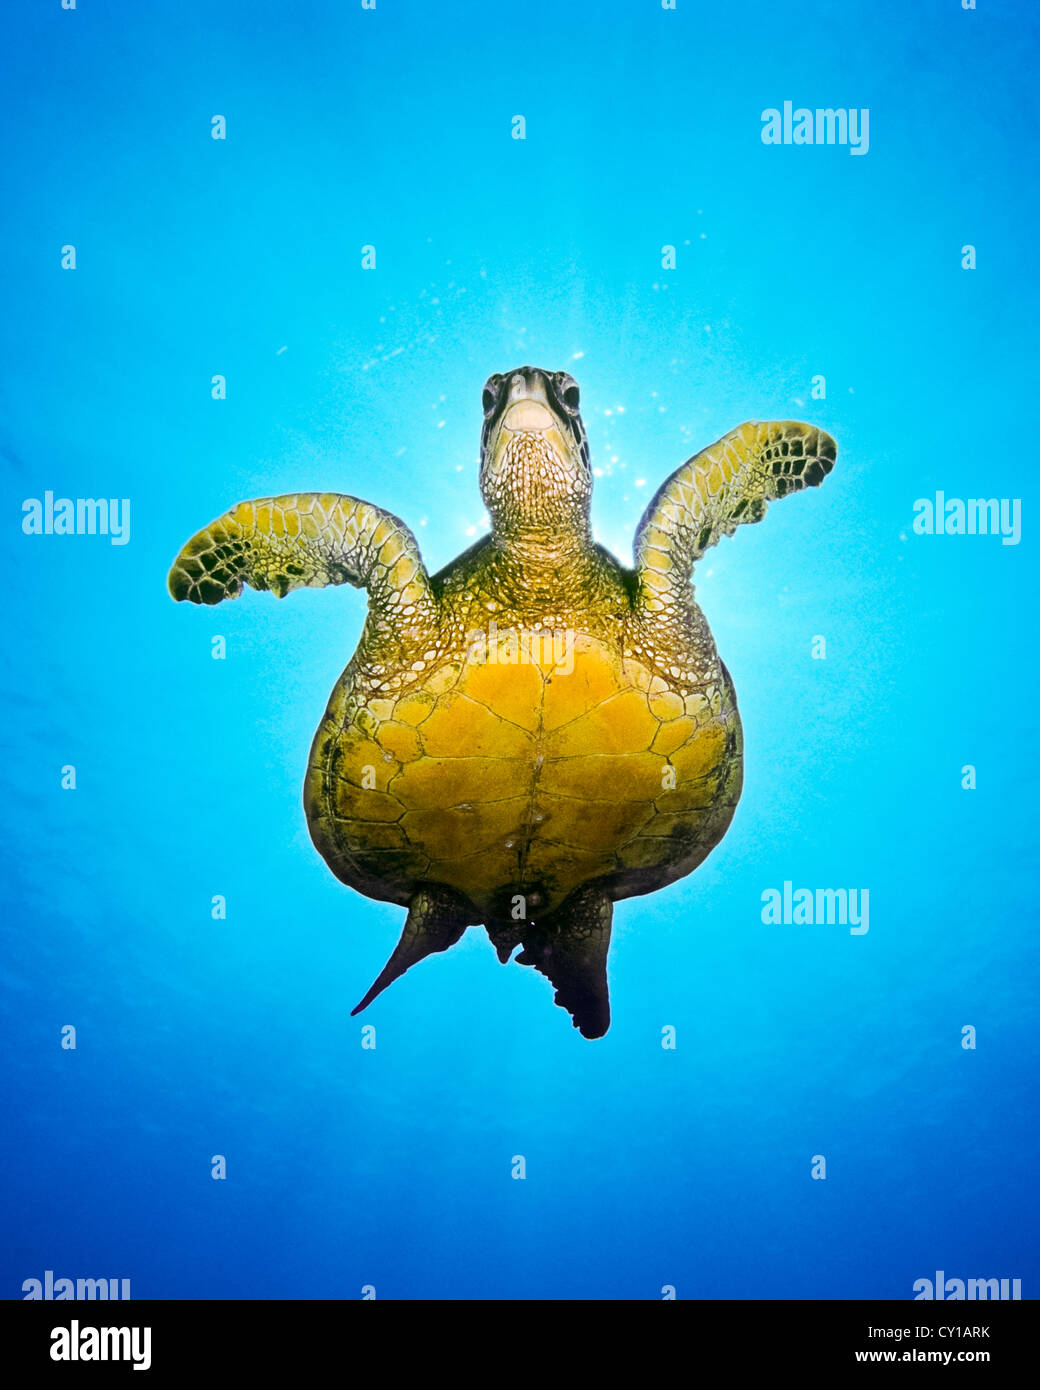 Green Sea Turtle, Chelonia mydas, Big Island, Hawaii, USA - Stock Image